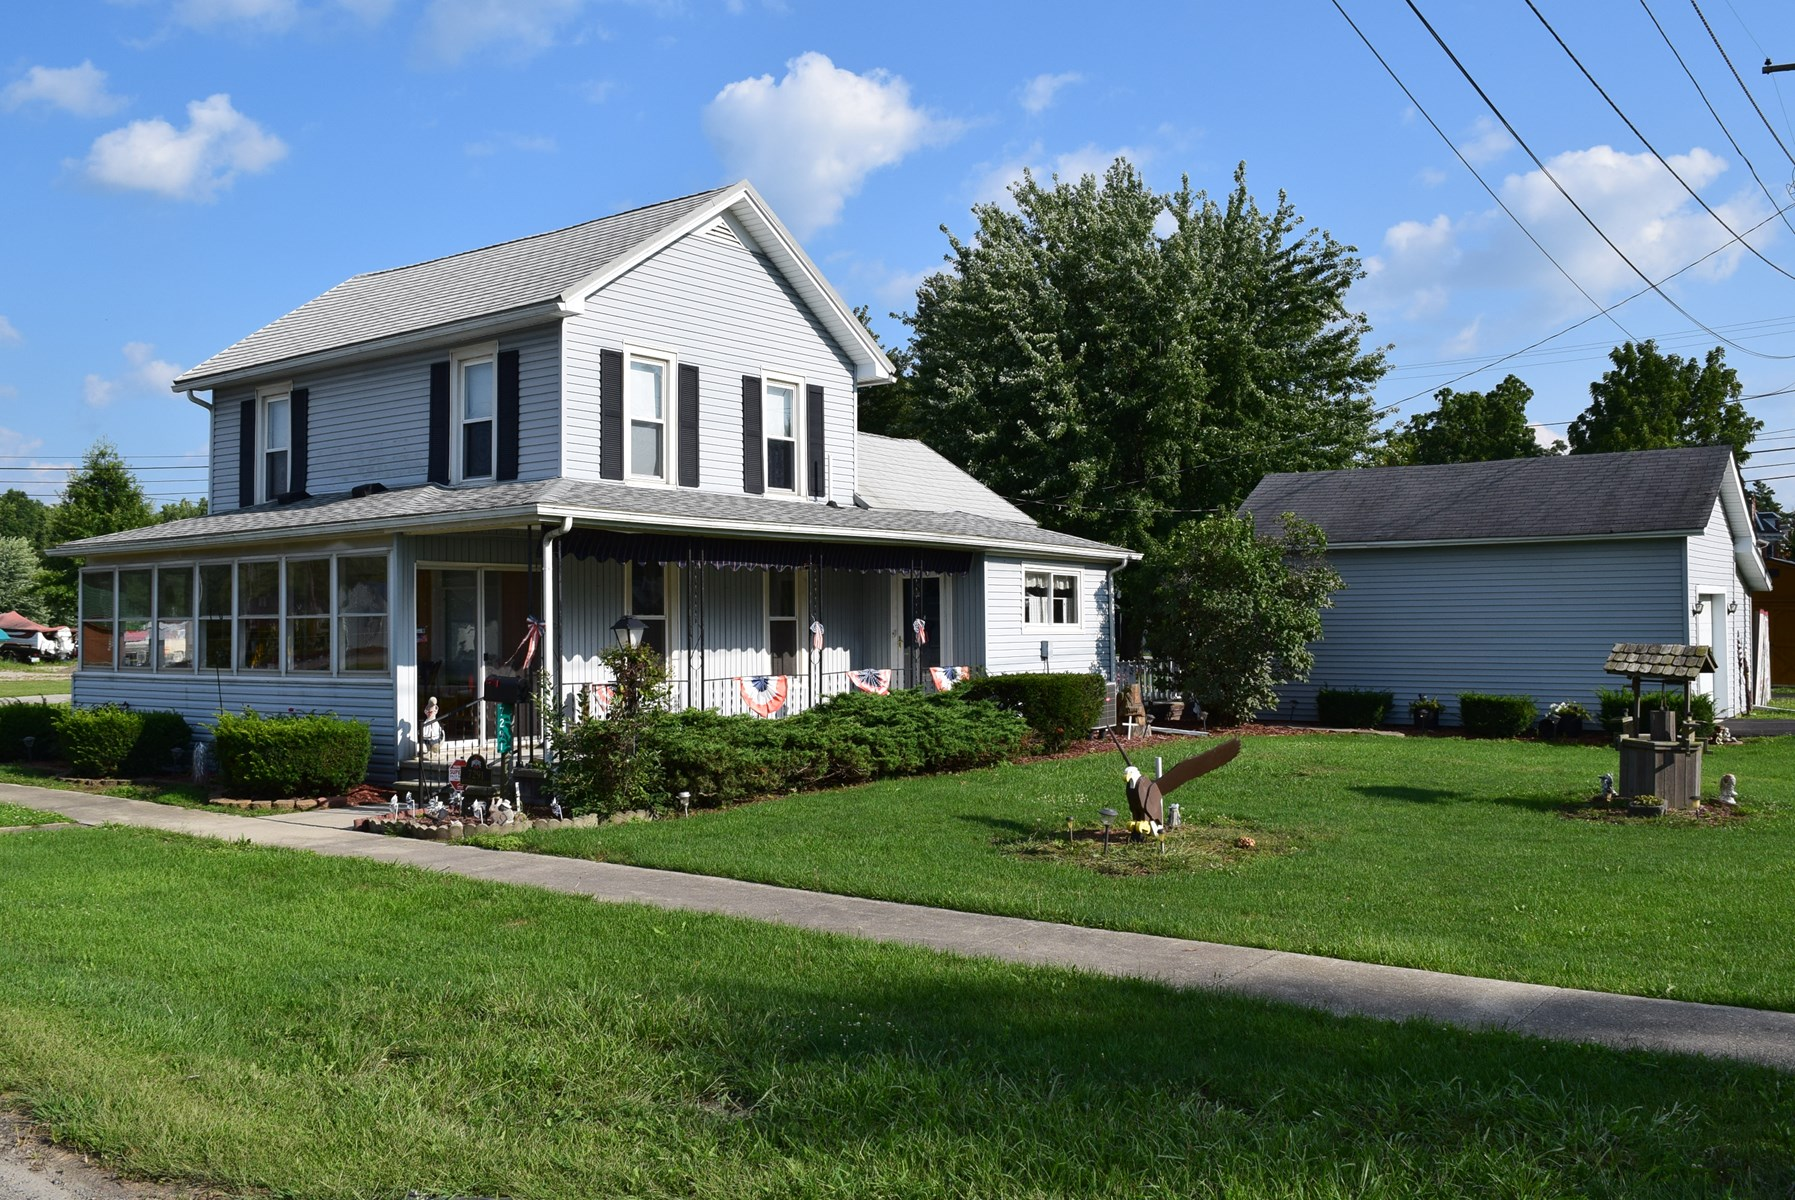 7291 Wyandot St., Harpster, Ohio 3 Bedroom Home